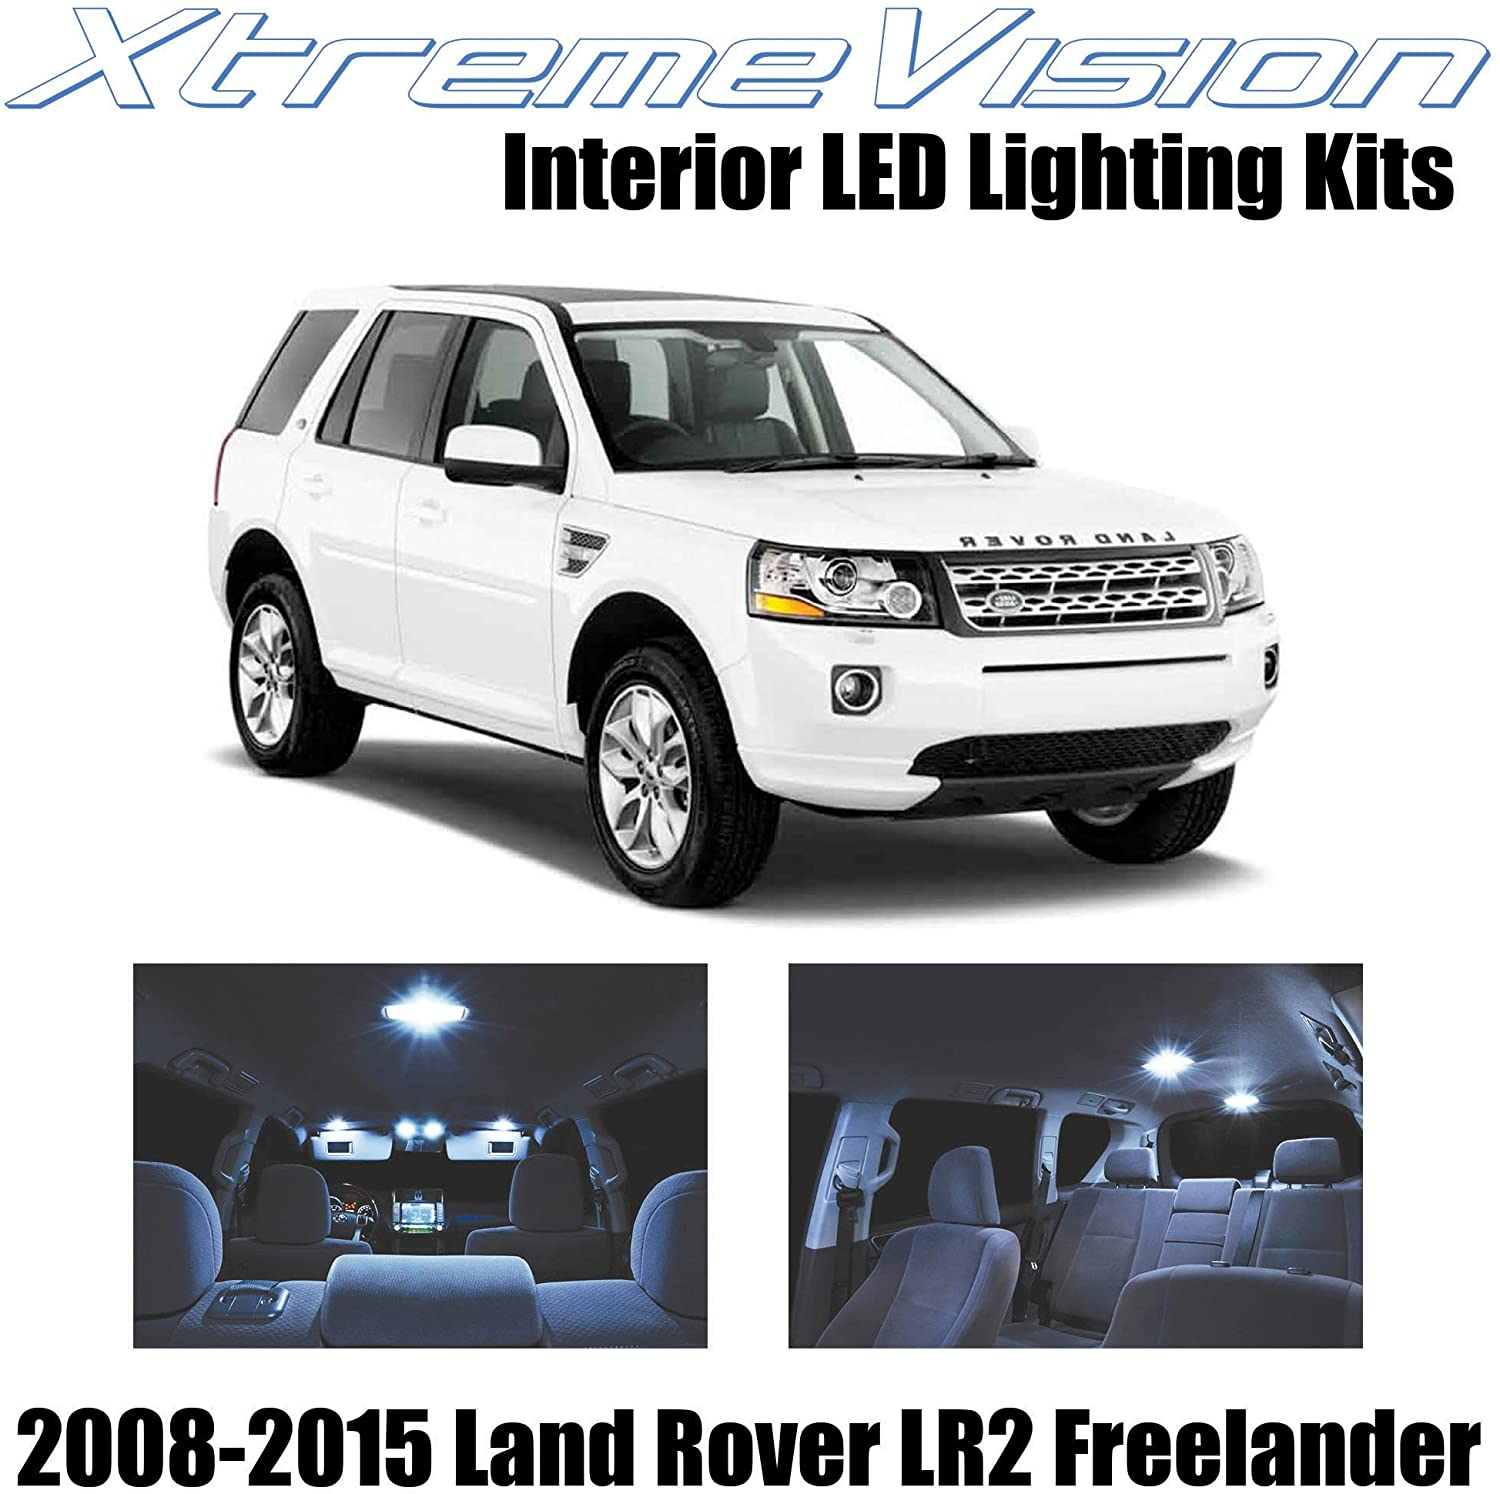 XtremeVision Interior LED for Land Rover LR2 Freelander SUV 2008-2015 (8 Pieces) Cool White Interior LED Kit + Installation Tool